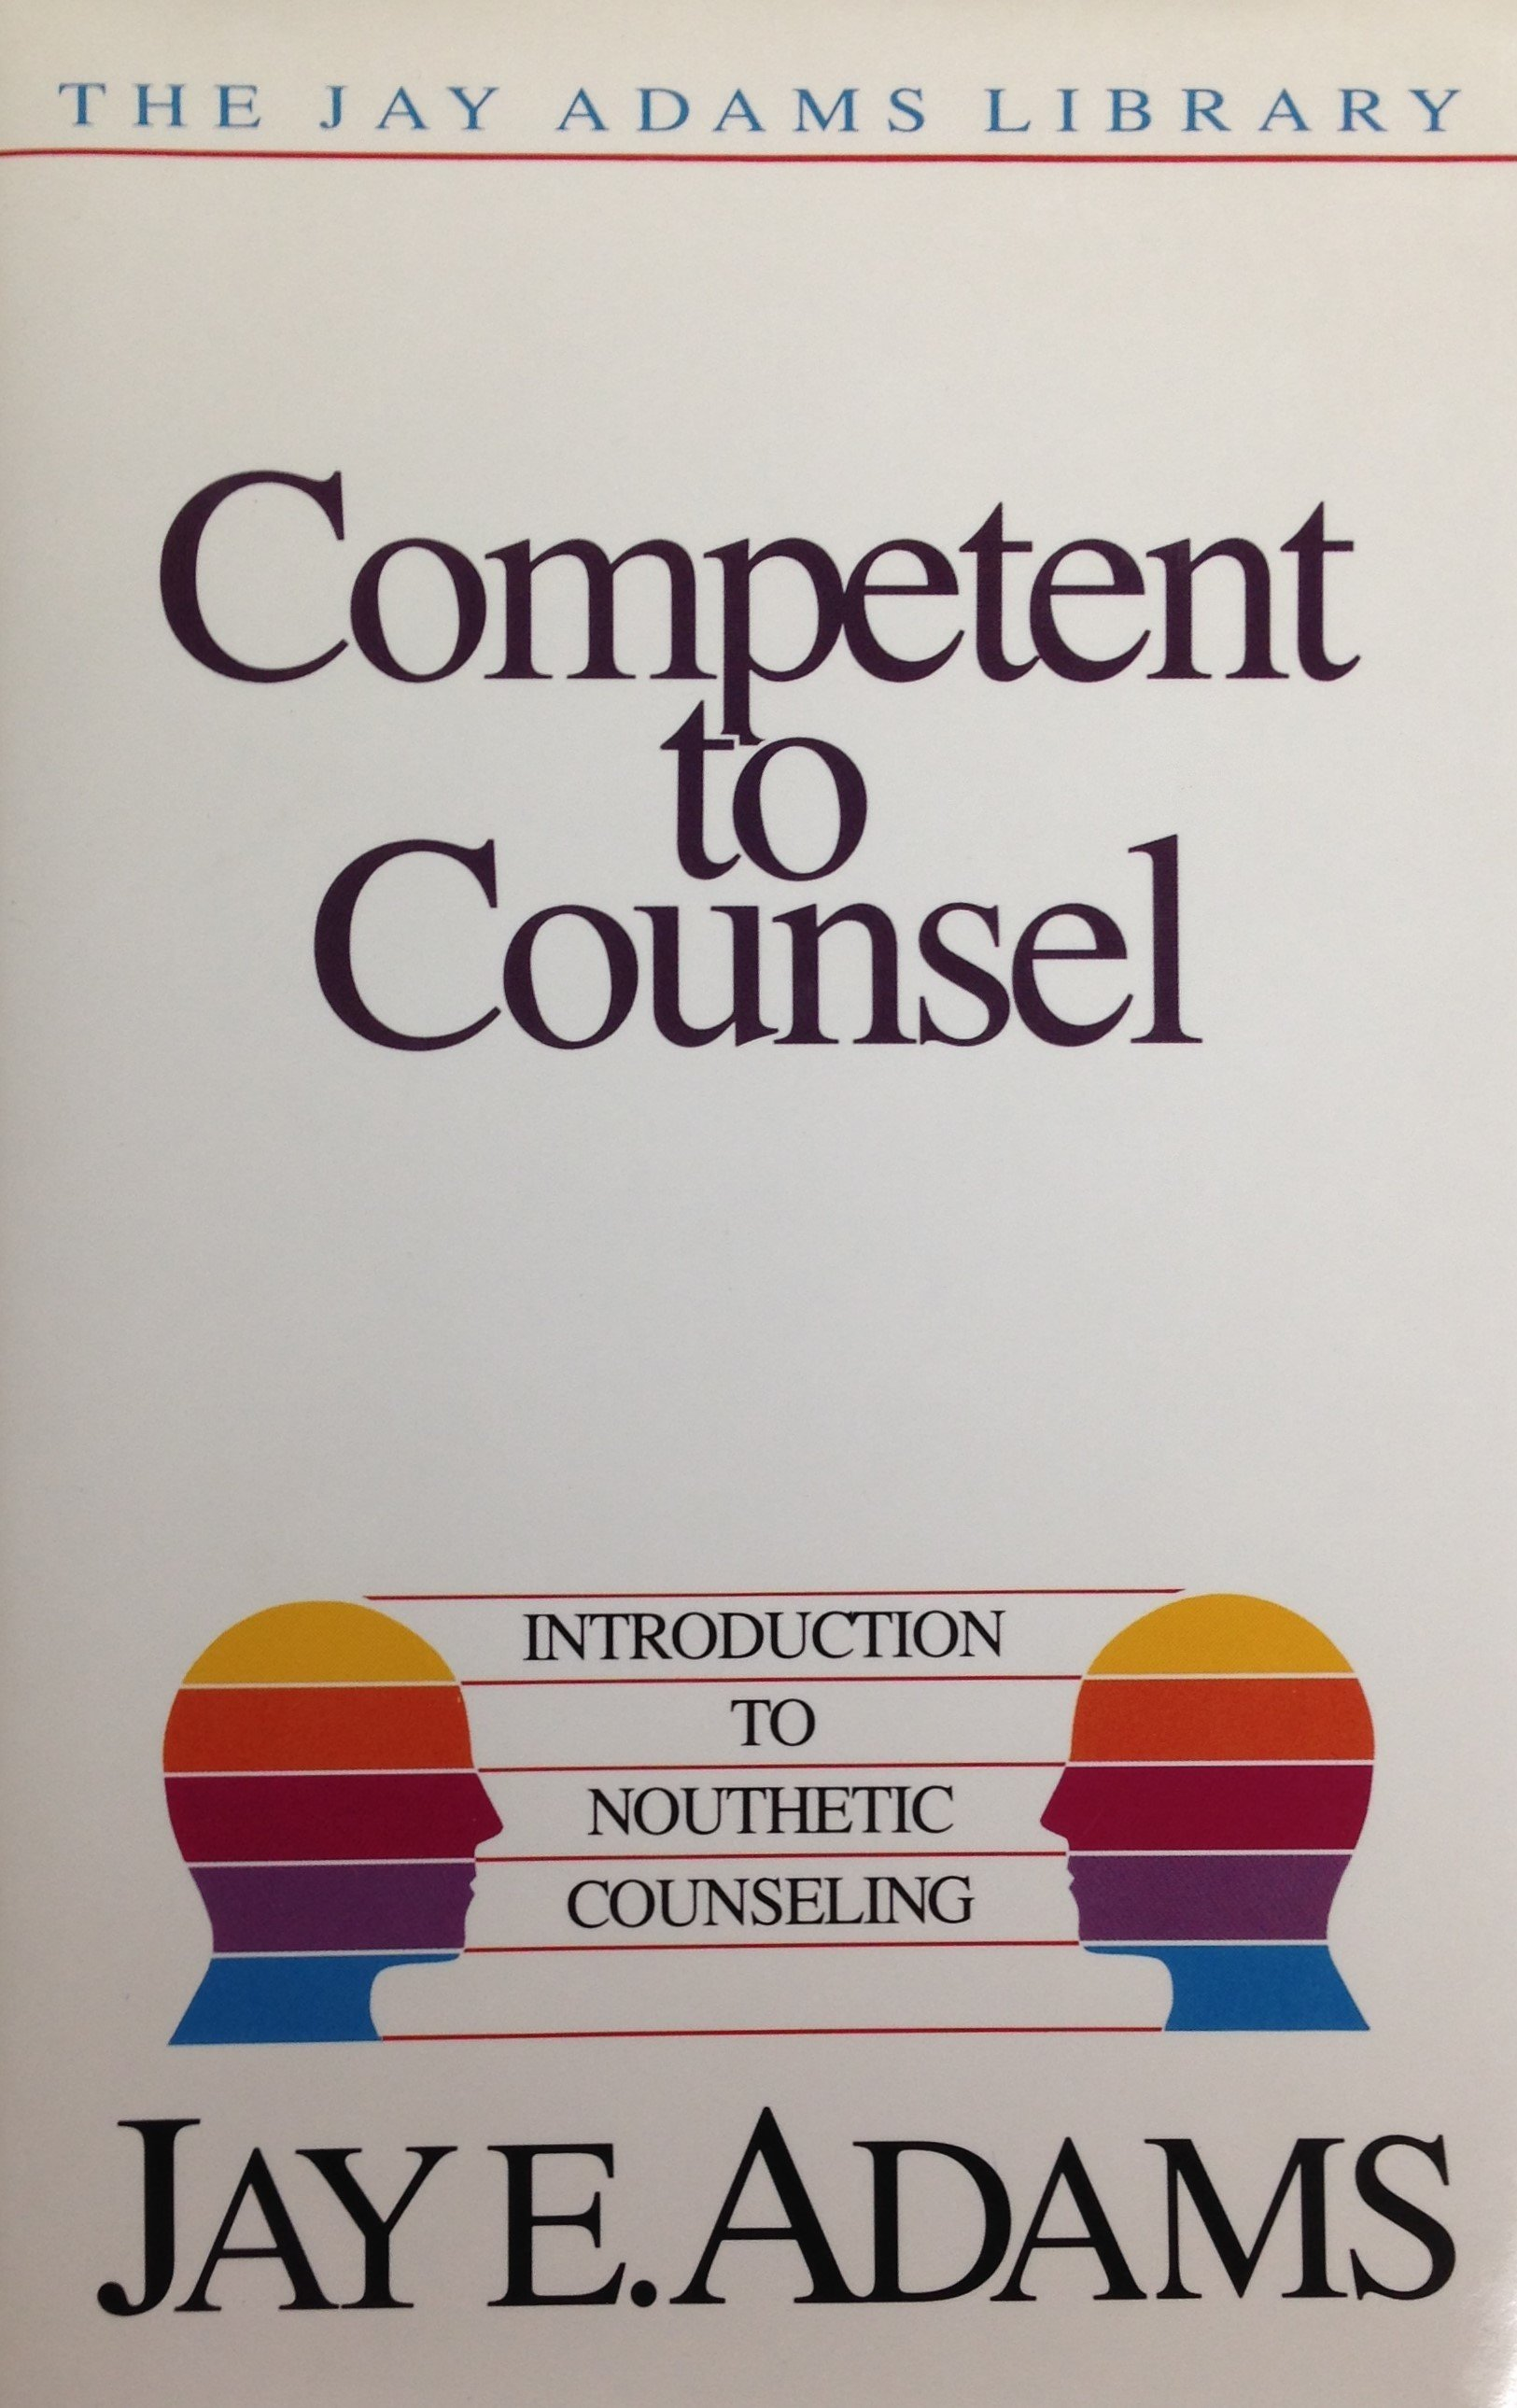 Competent to Counsel:  Introduction to Nouthetic Counseling by Jay E. Adams (Hardback) 00095